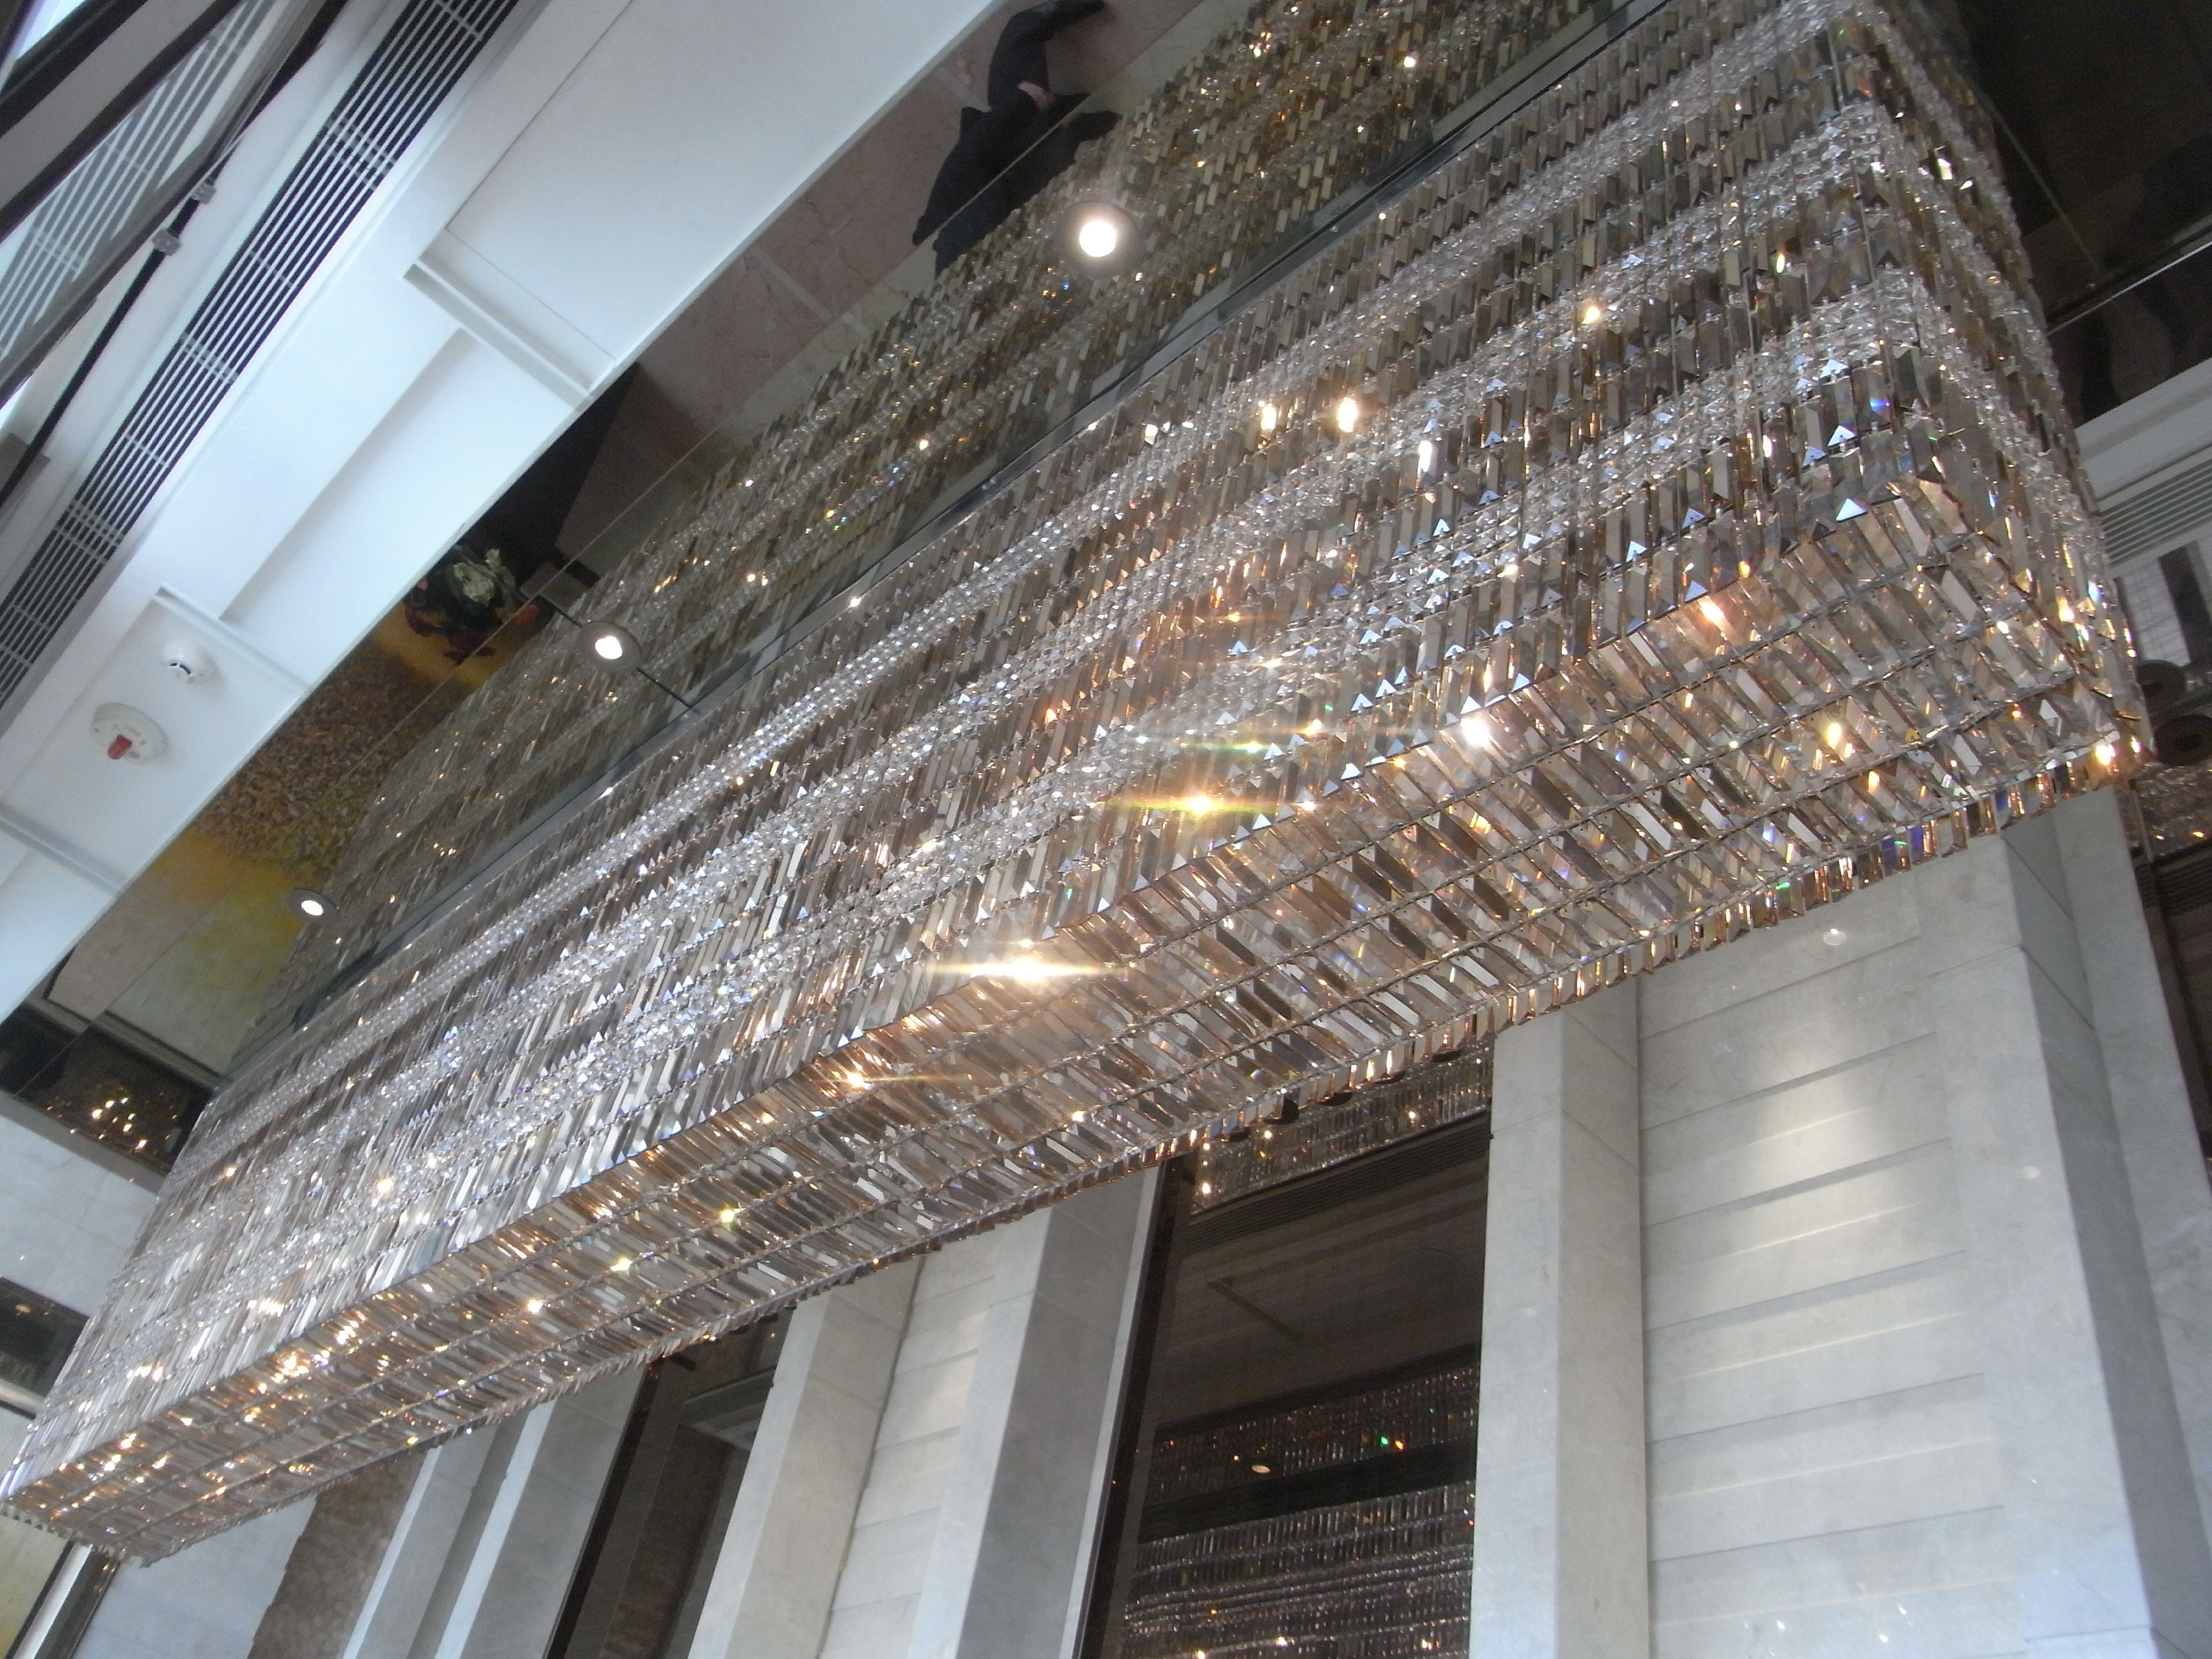 File HK Kln West 天璽 The Cullinan lift lobby ceiling lamps June